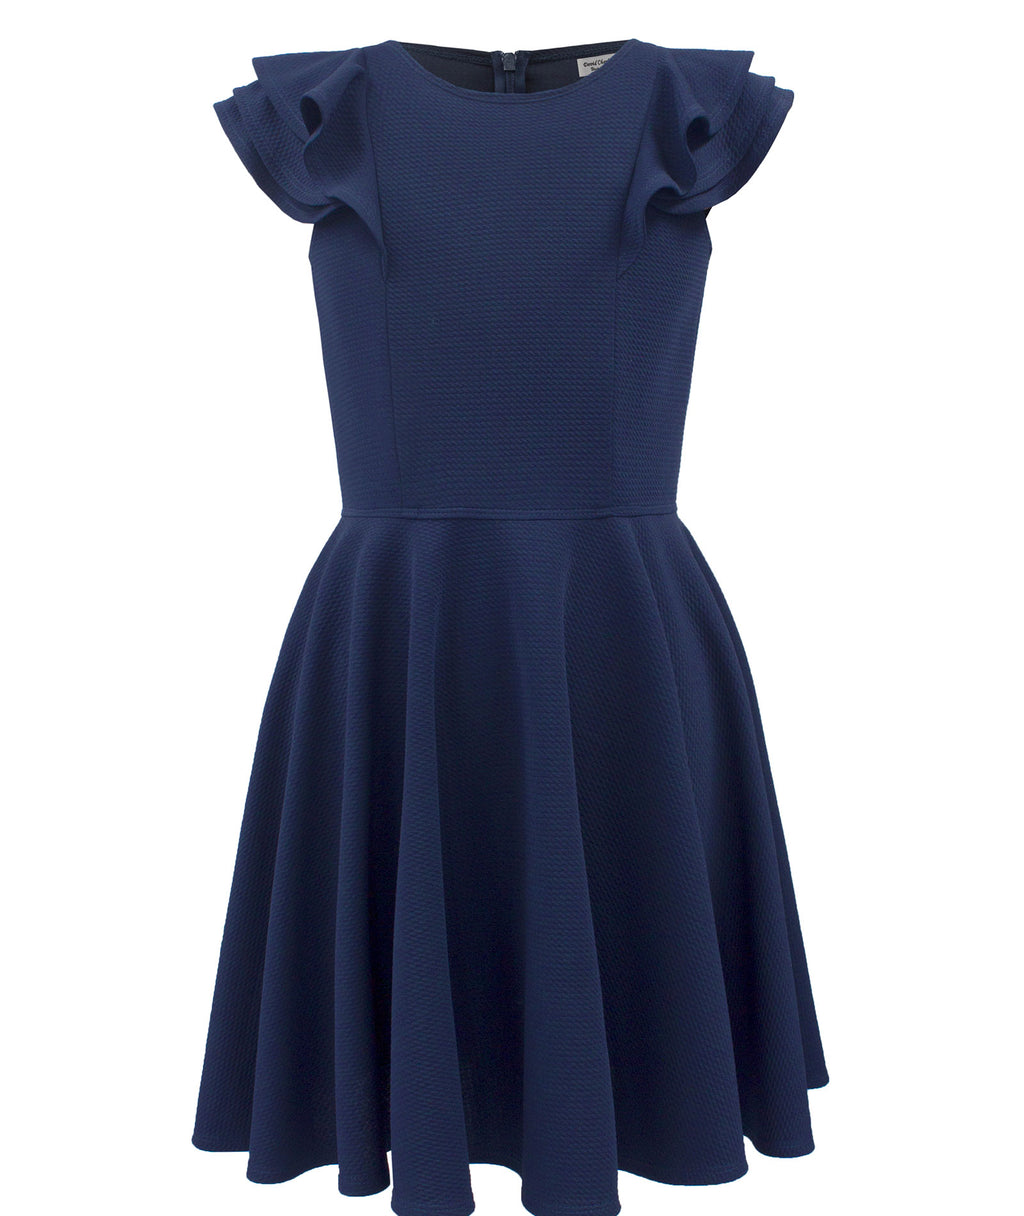 David Charles Girls Navy Ruffle Sleeve Dress